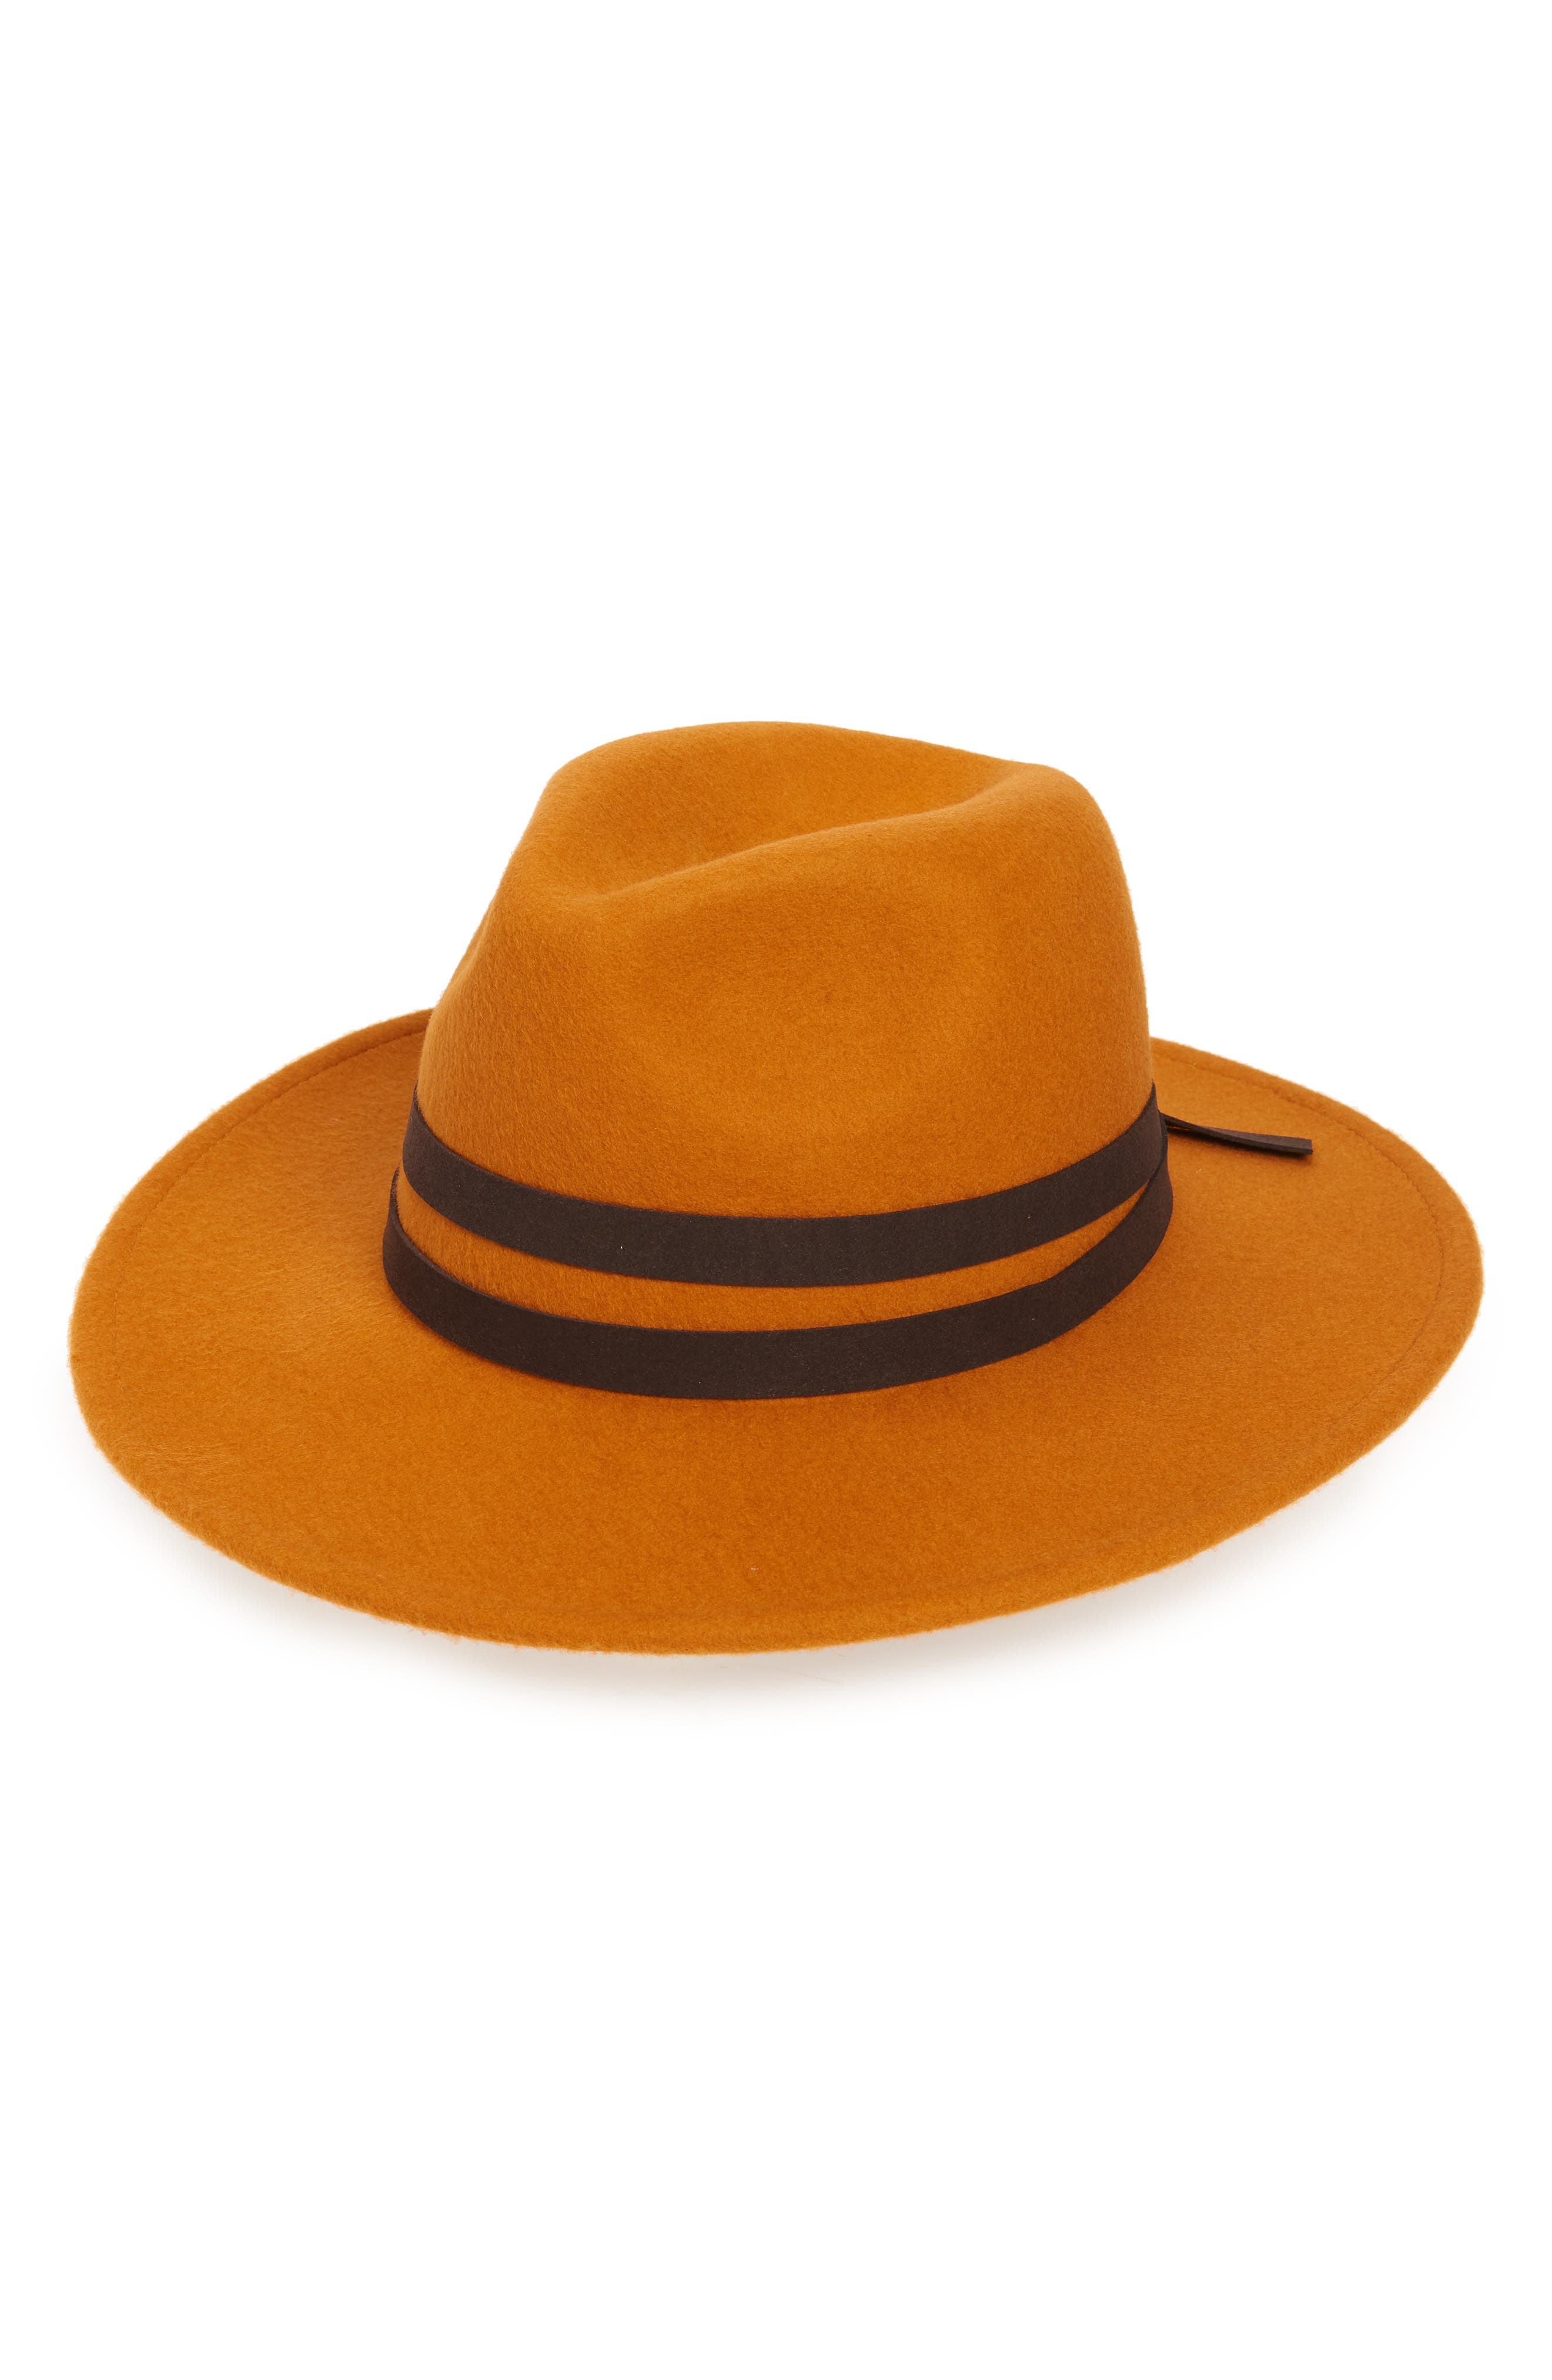 A contrast band is tied at the crown of a fashionable fedora crafted from felted wool. When you buy Treasure & Bond, Nordstrom will donate 2.5% of net sales to organizations that work to empower youth. Style Name: Treasure & Bond Western Felted Wool Fedora. Style Number: 5812111. Available in stores.